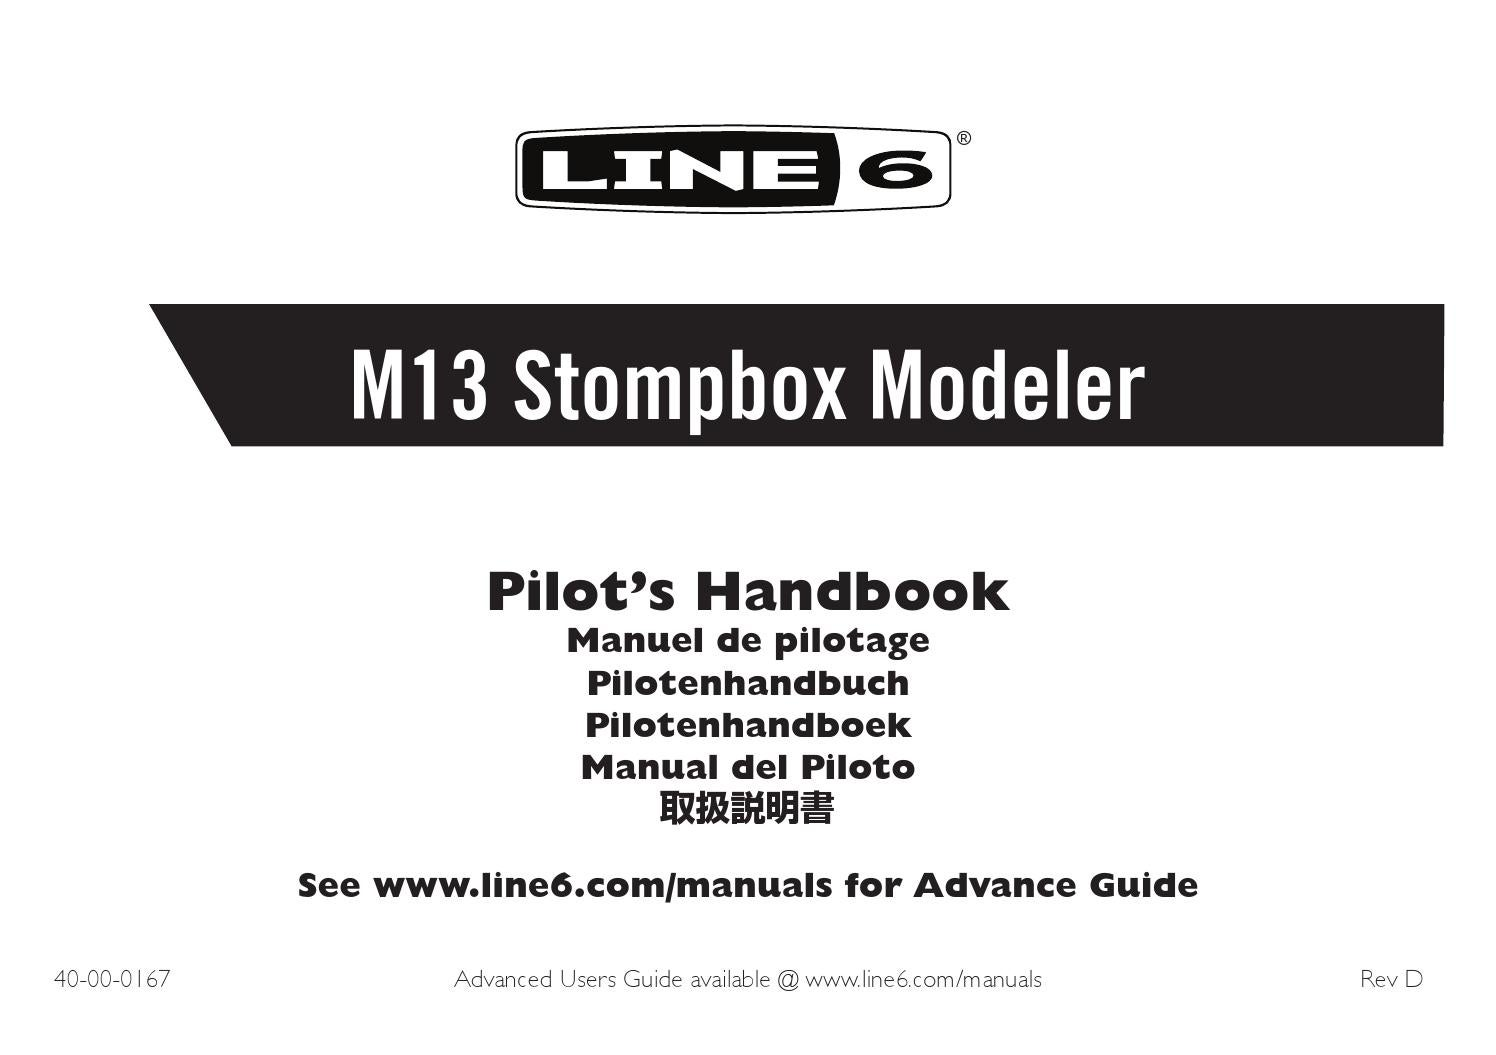 M13 stompbox modeler users manual english ( rev d ) by Bobby Blades - issuu